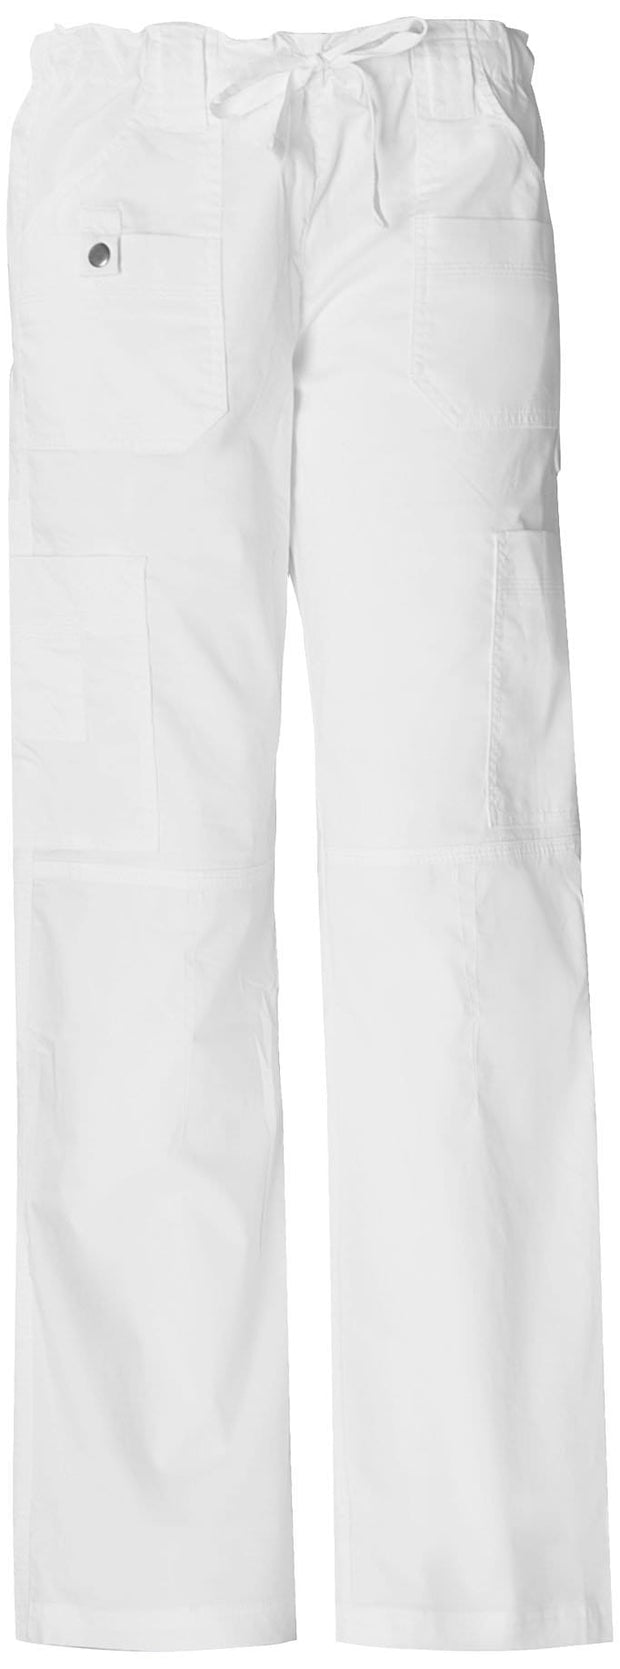 857455T Low Rise Drawstring Cargo Pant (Tall)